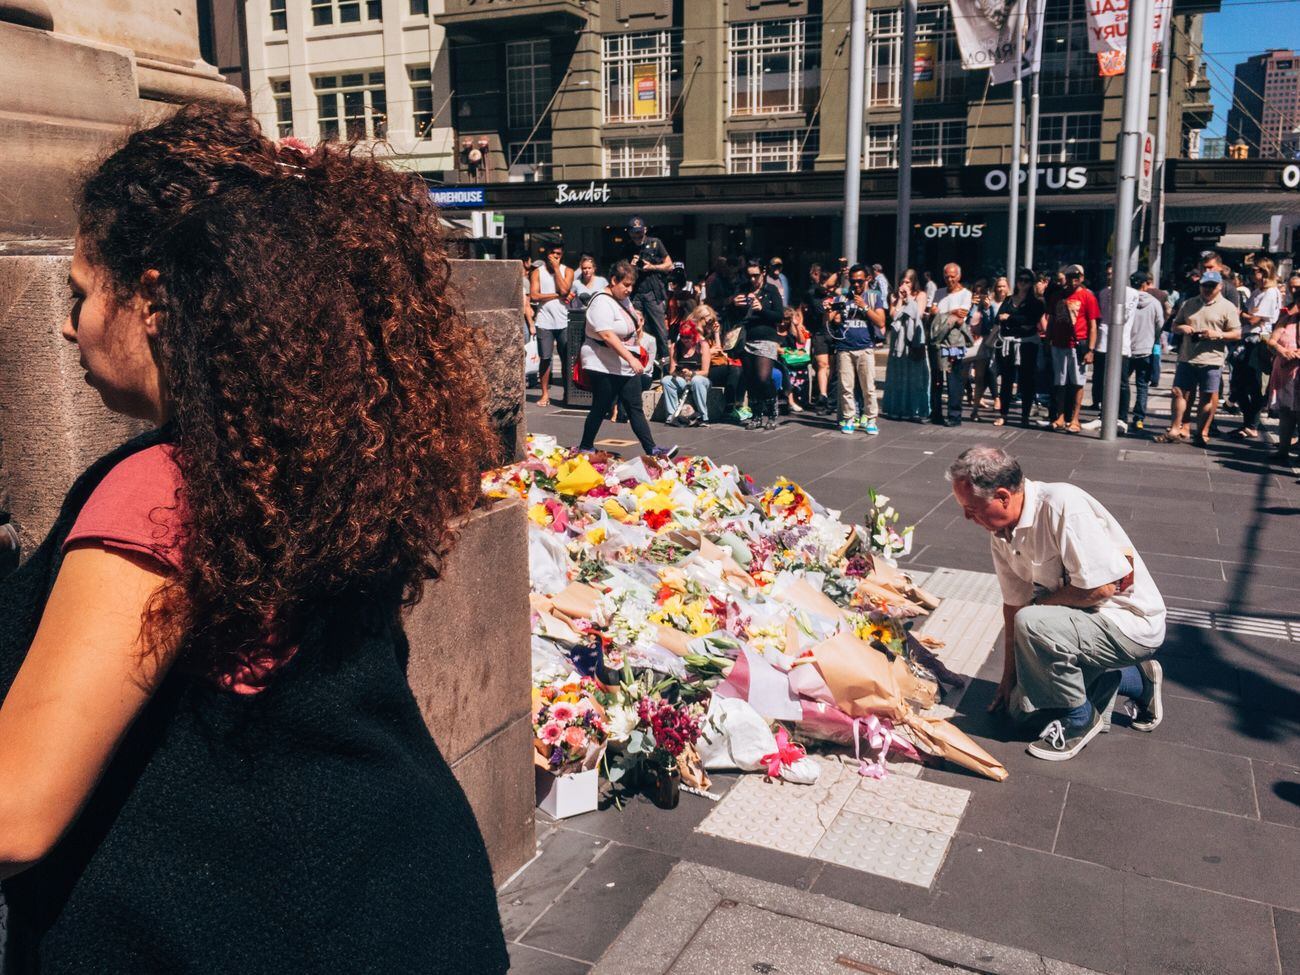 Today, the people of Melbourne gathered at the Bourke Street mall to grieve. Streetphotography Streetphoto_color Streets Of Melbourne ShotoniPhone6s Procamera Adobelightroommobile Mobilephotography IPhoneography MelbournePhotographer Reportage Photojournalism Bourke St - Melbourne People Watching VSCO